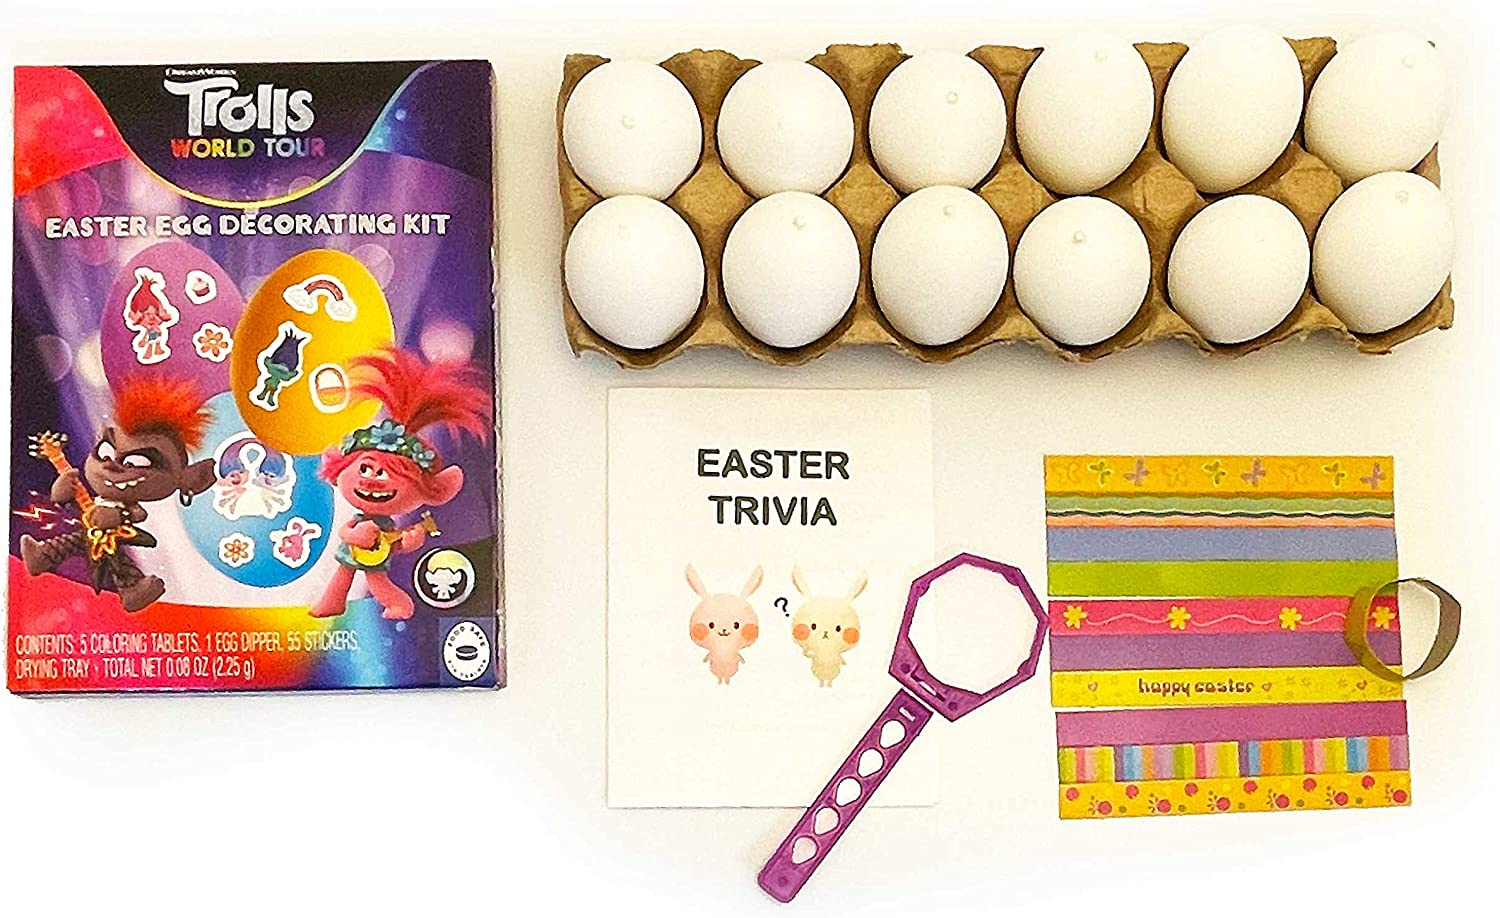 Easter Egg Decorating DIY Dyeing Kit Bundle with 12 Plastic Eggs, 5 Non-Toxic Food Grade Coloring Tablet Dyes, 2 Egg Dipper, Stickers, Drying Tray, Easter Trivia (Trolls World Tour)